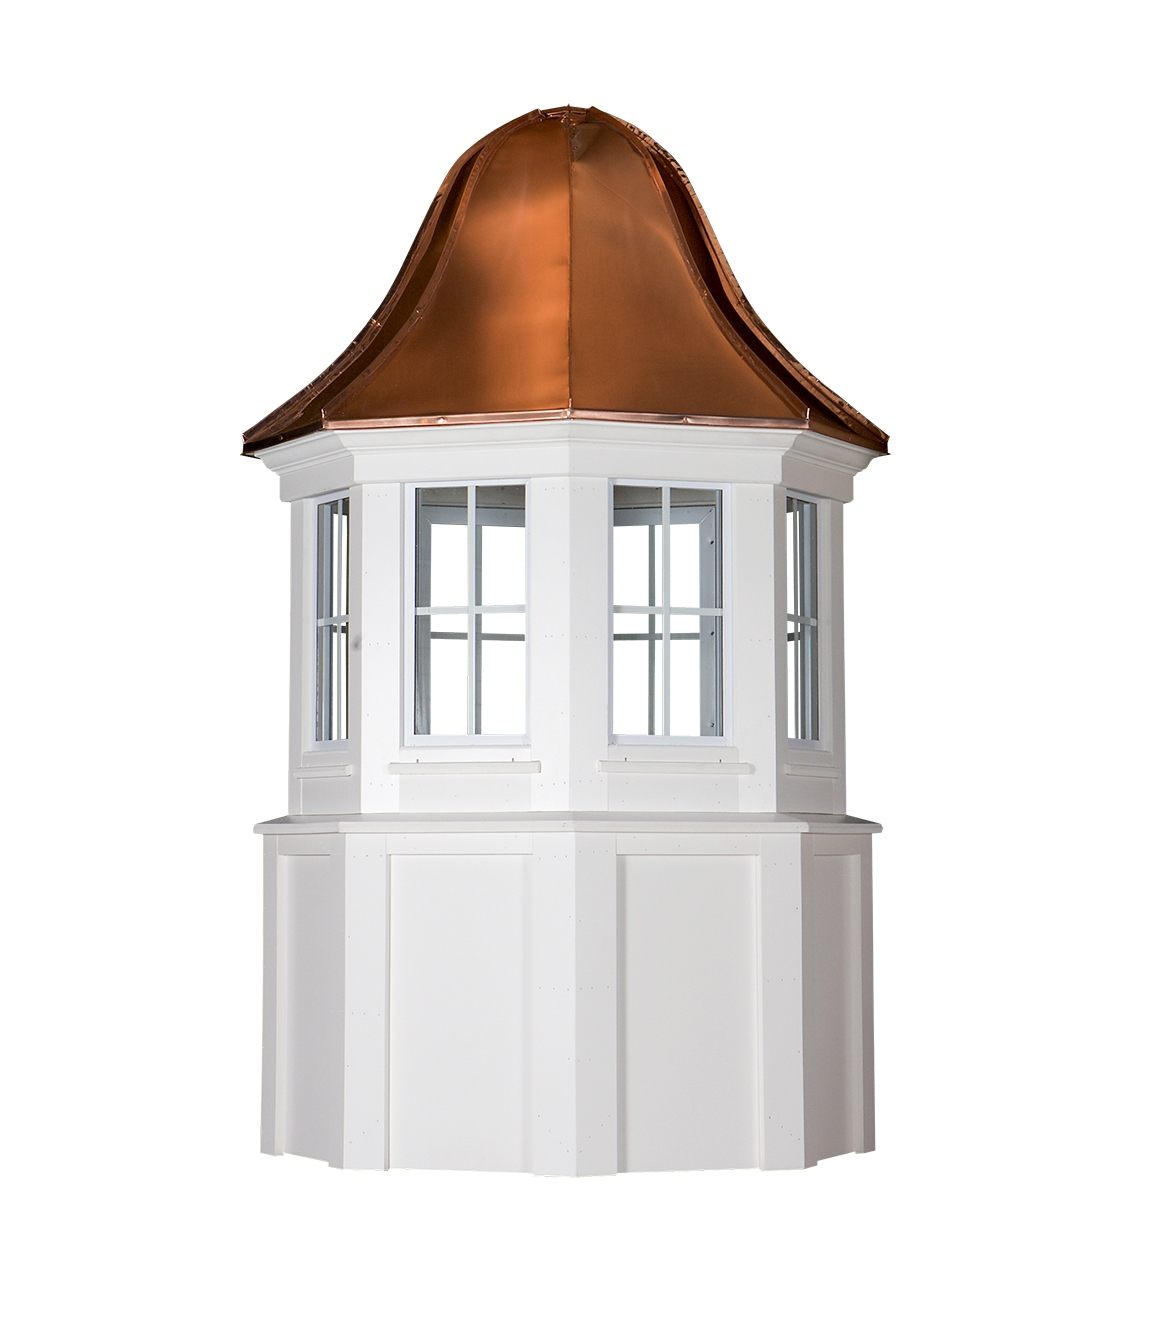 DARTMOUTH CUPOLAS (ME8BW)